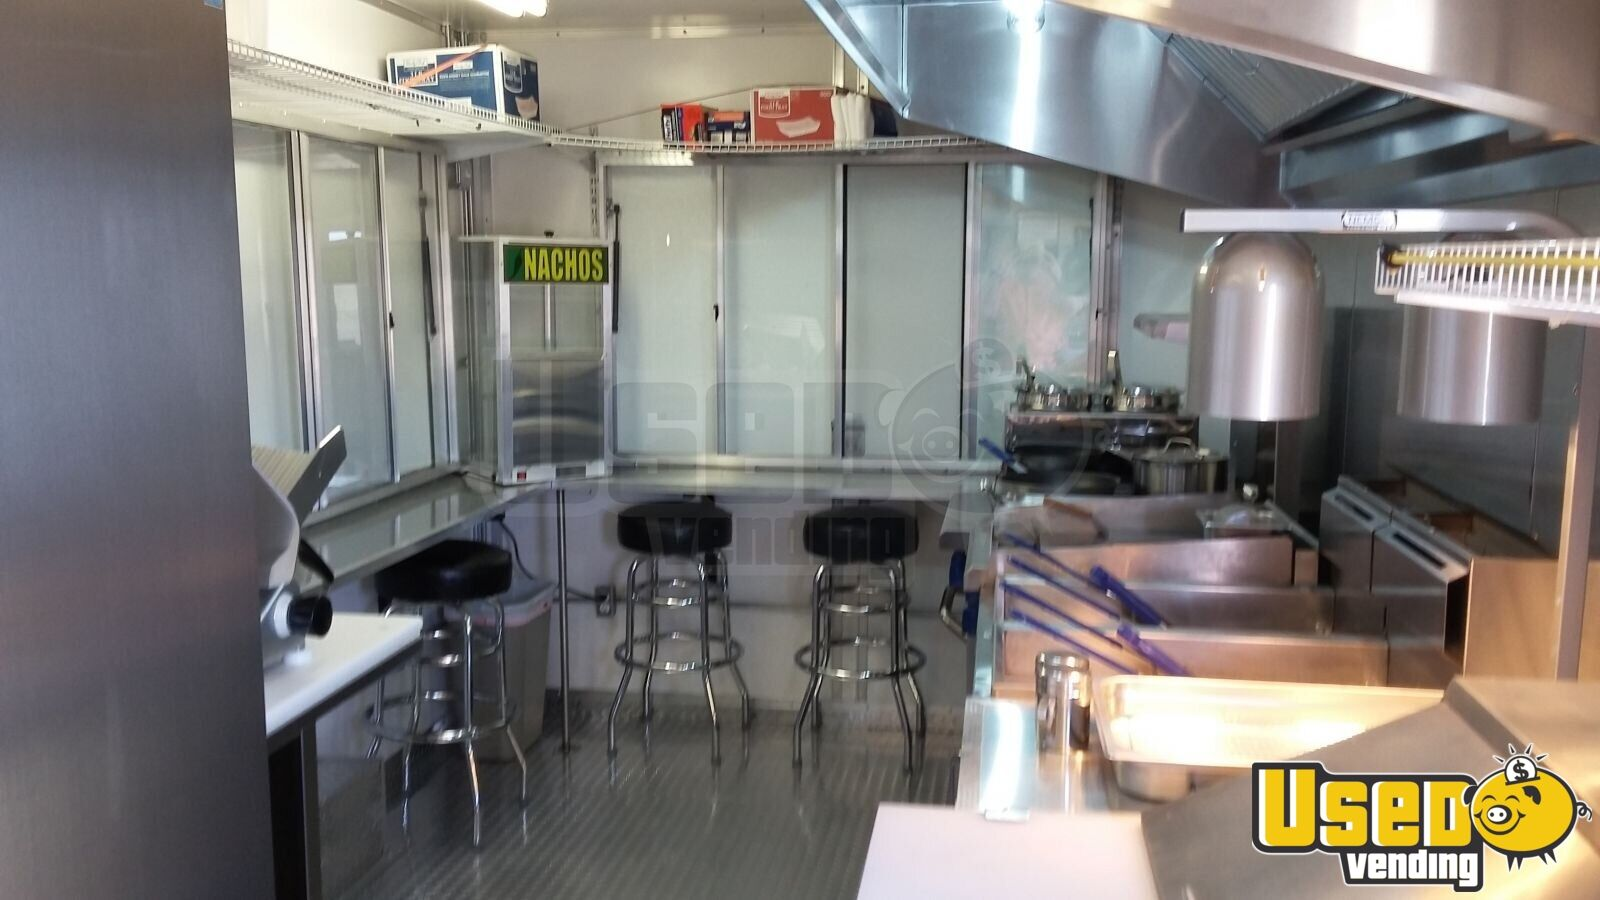 2015 Bestbilt All-purpose Food Trailer Concession Window Texas for Sale - 3